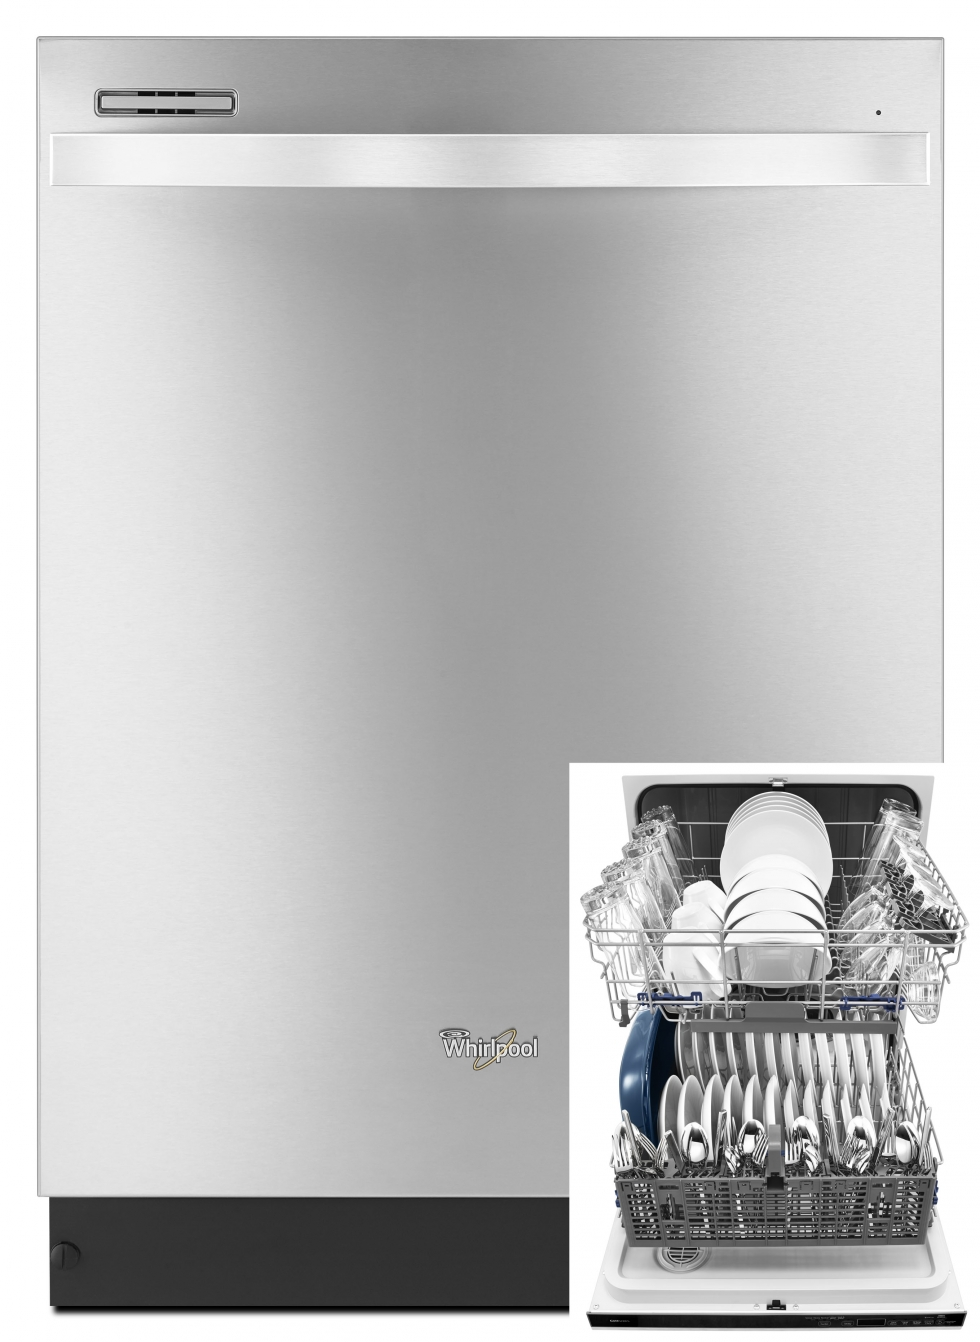 Whirlpool Gold Dishwasher Stainless Steel